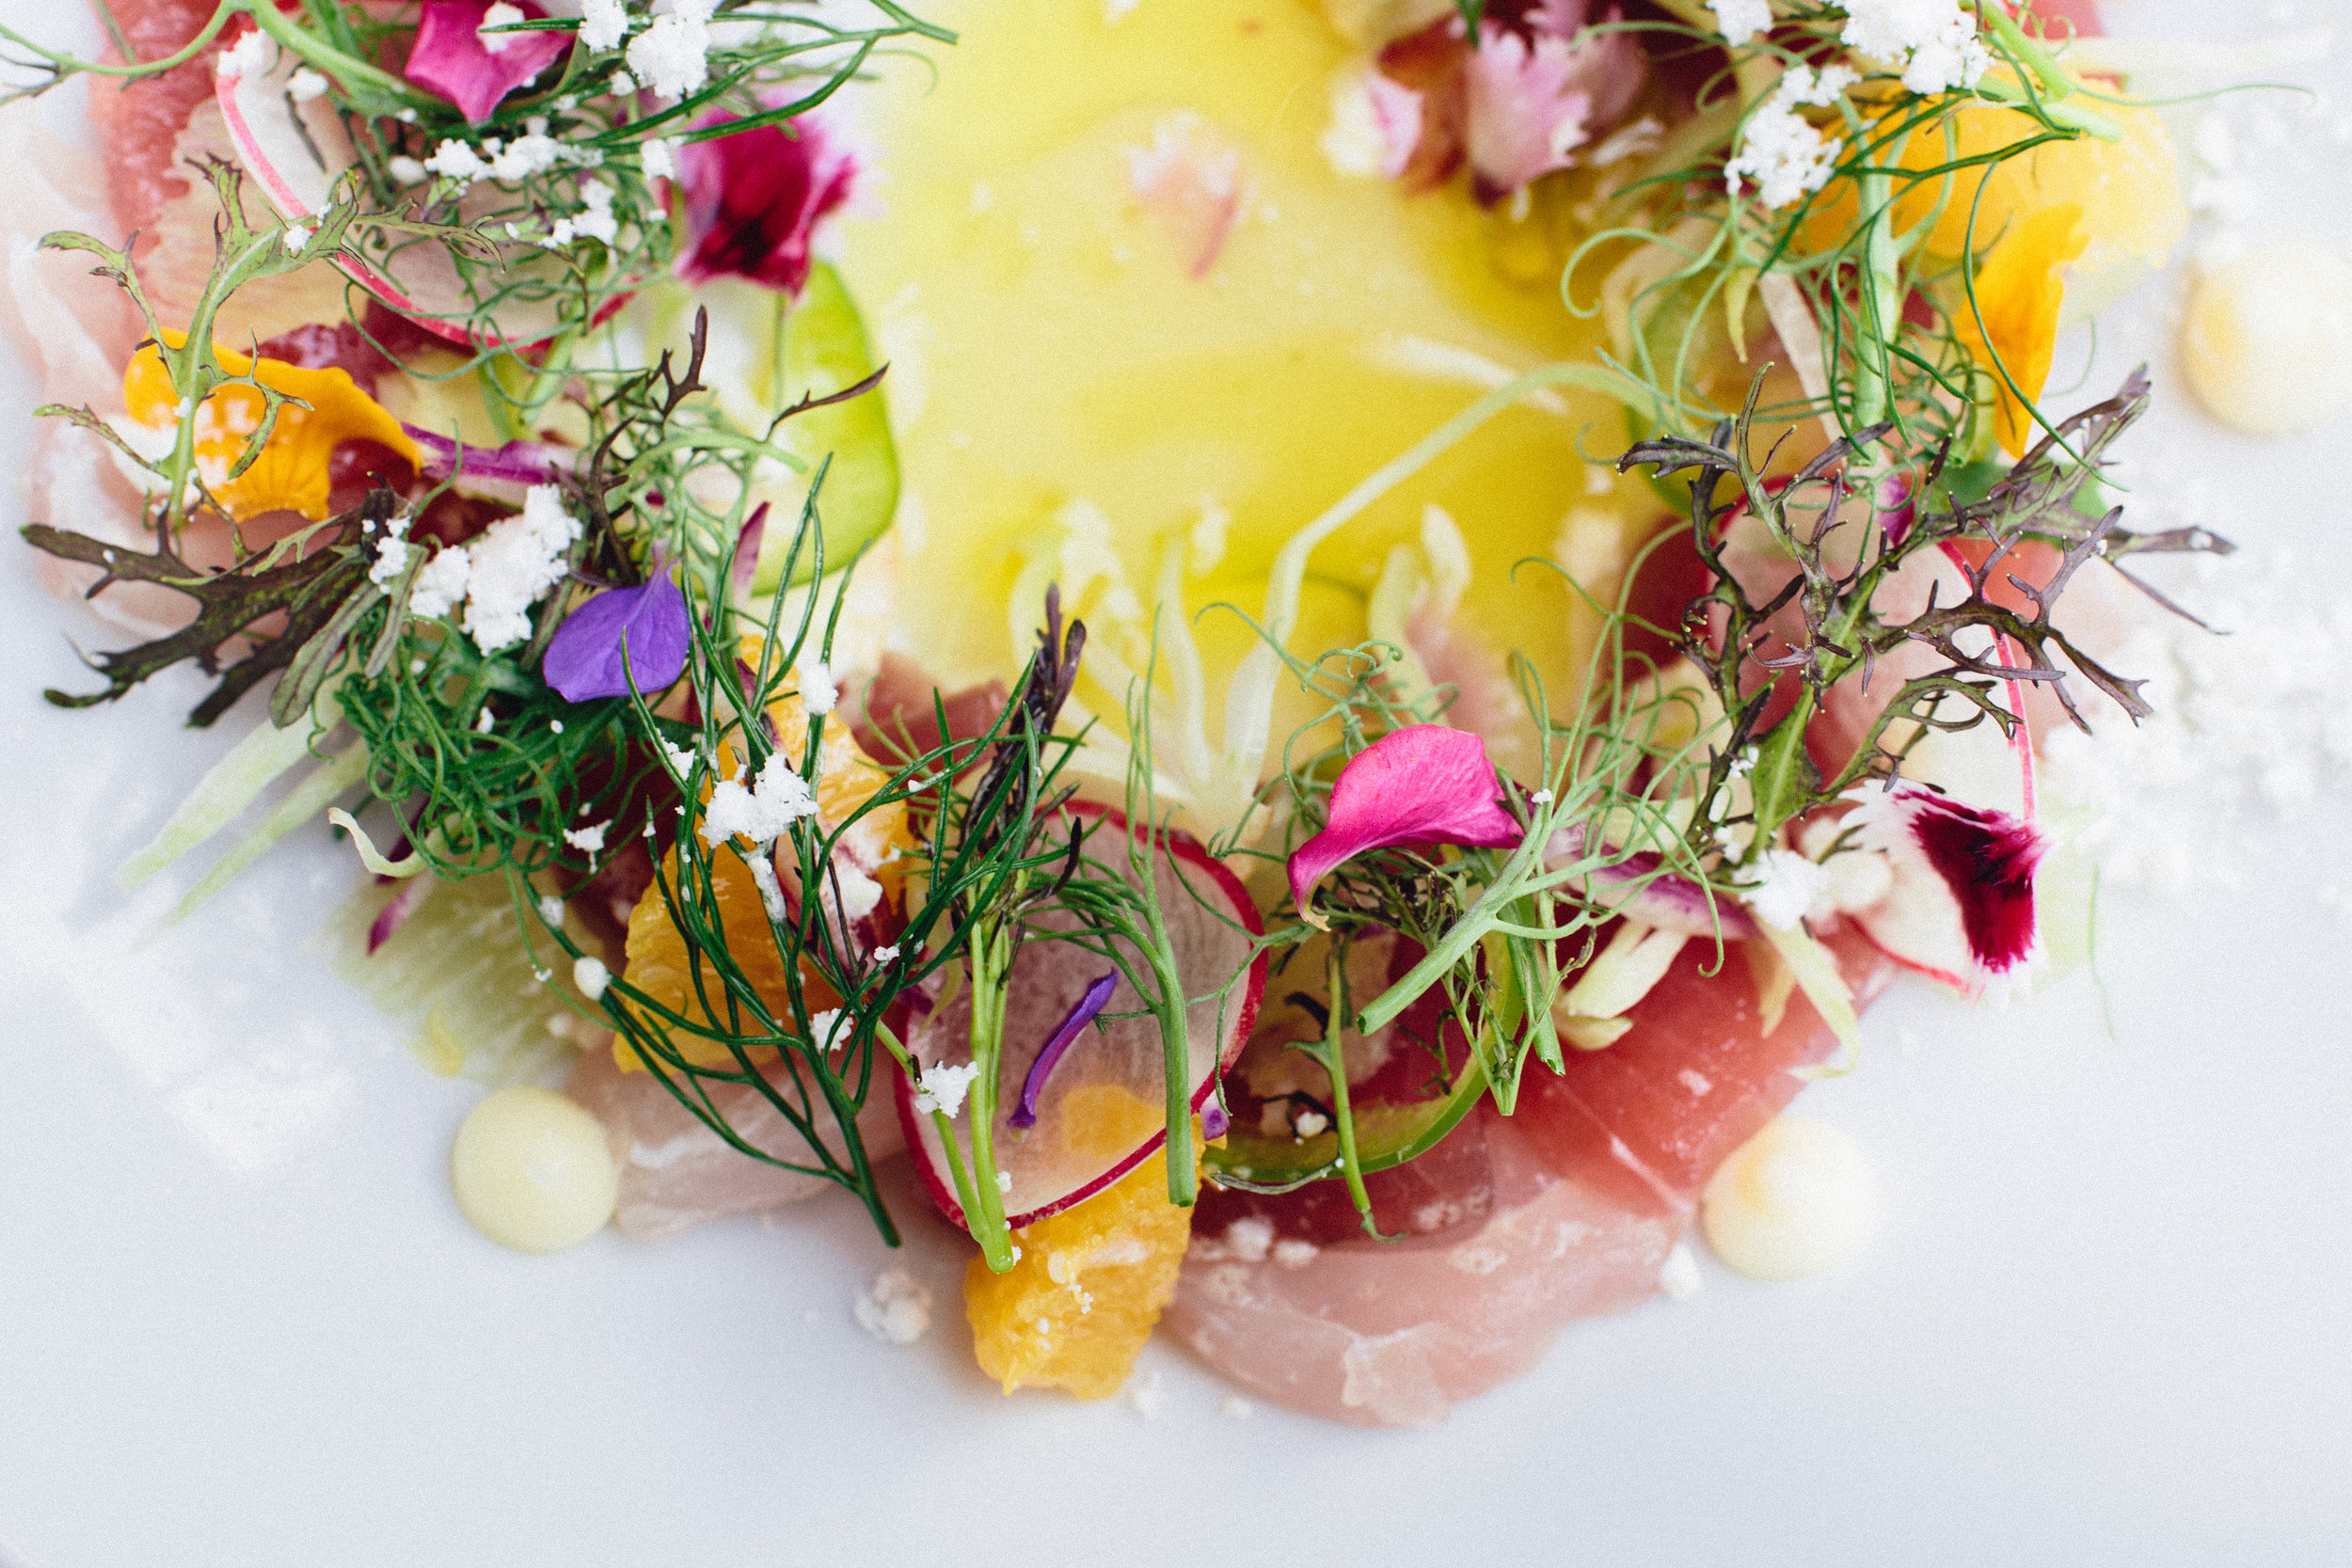 The Crudo: Ahi Tuna and Scallops with a ceviche vinaigrette in the middle, olive oil powder, olive oil pudding, shaved raw fennel, jalapeños, breakfast radishes. Garnished with mustard frill and edible flowers.